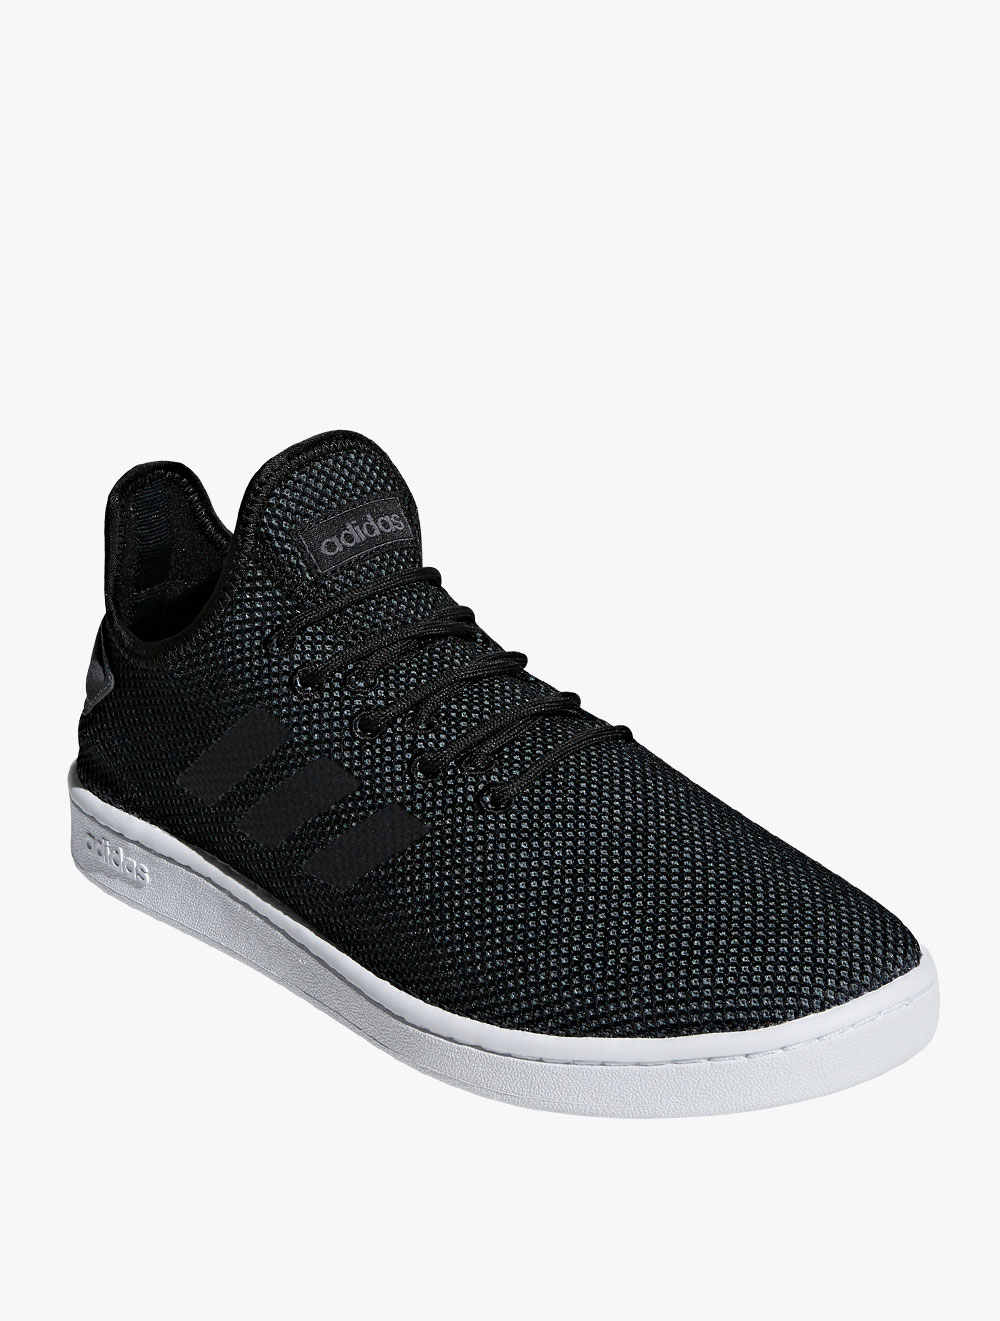 Shop The Latest Men's Shoes From PLANET SPORTS on